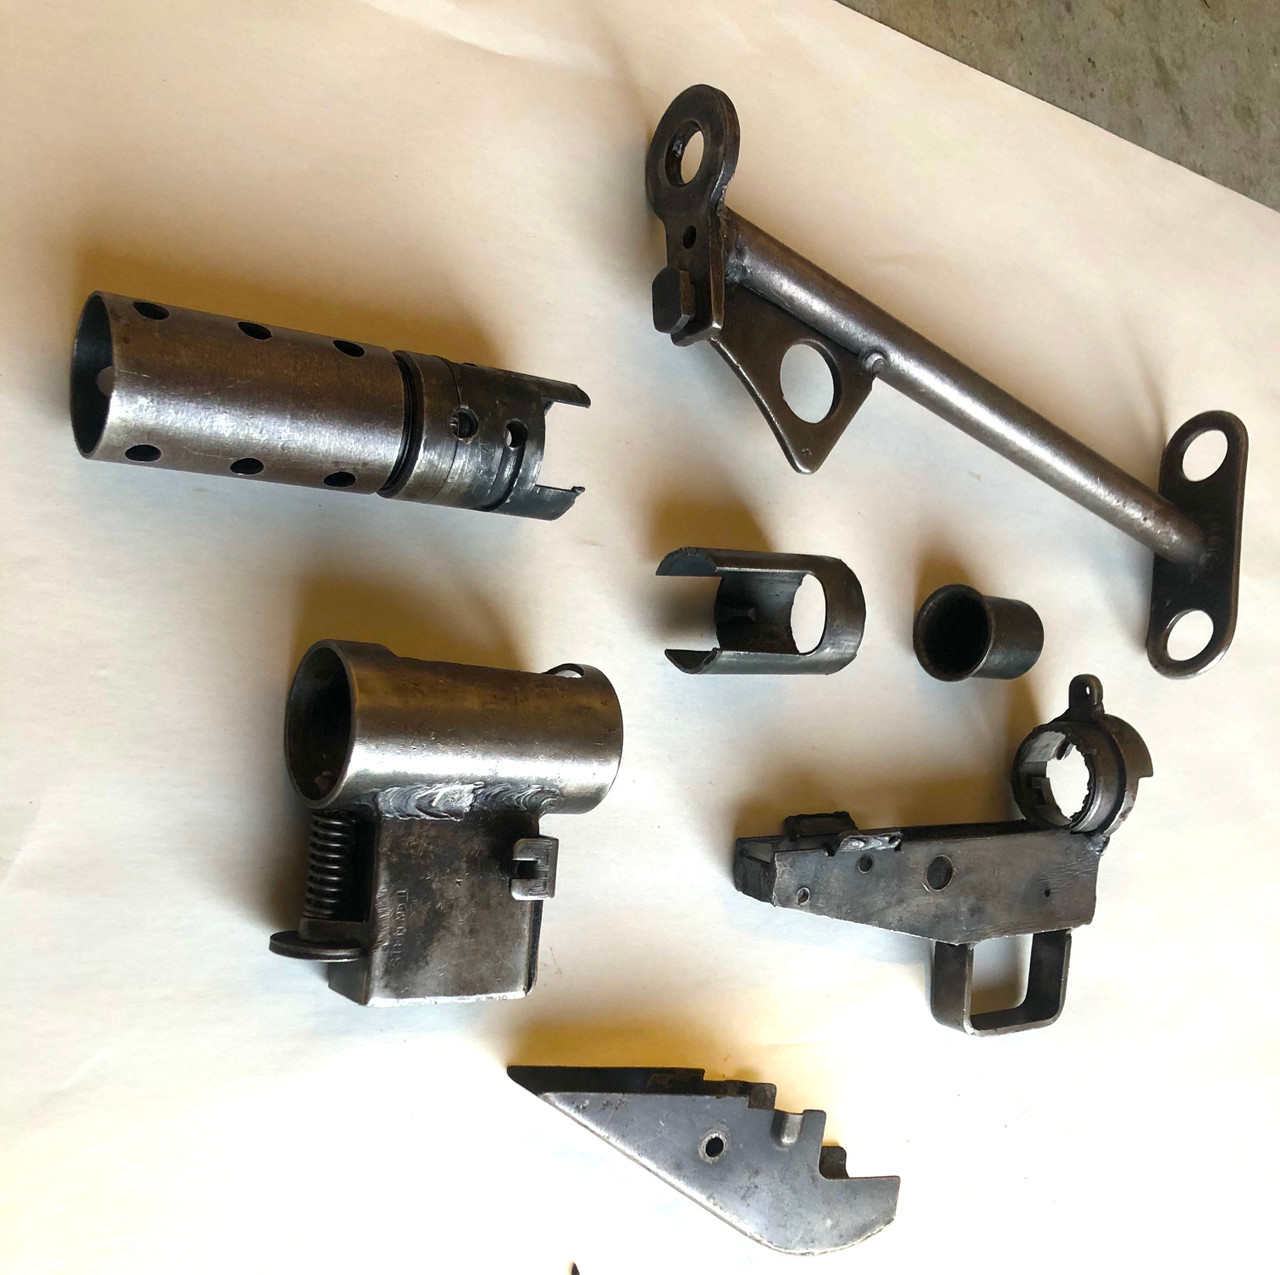 MkII Parts Lot with Cut Receiver: Mag Housing, Barrel Nut, Stock, Fire Control Housing, Ejector, and Barrel Bushing